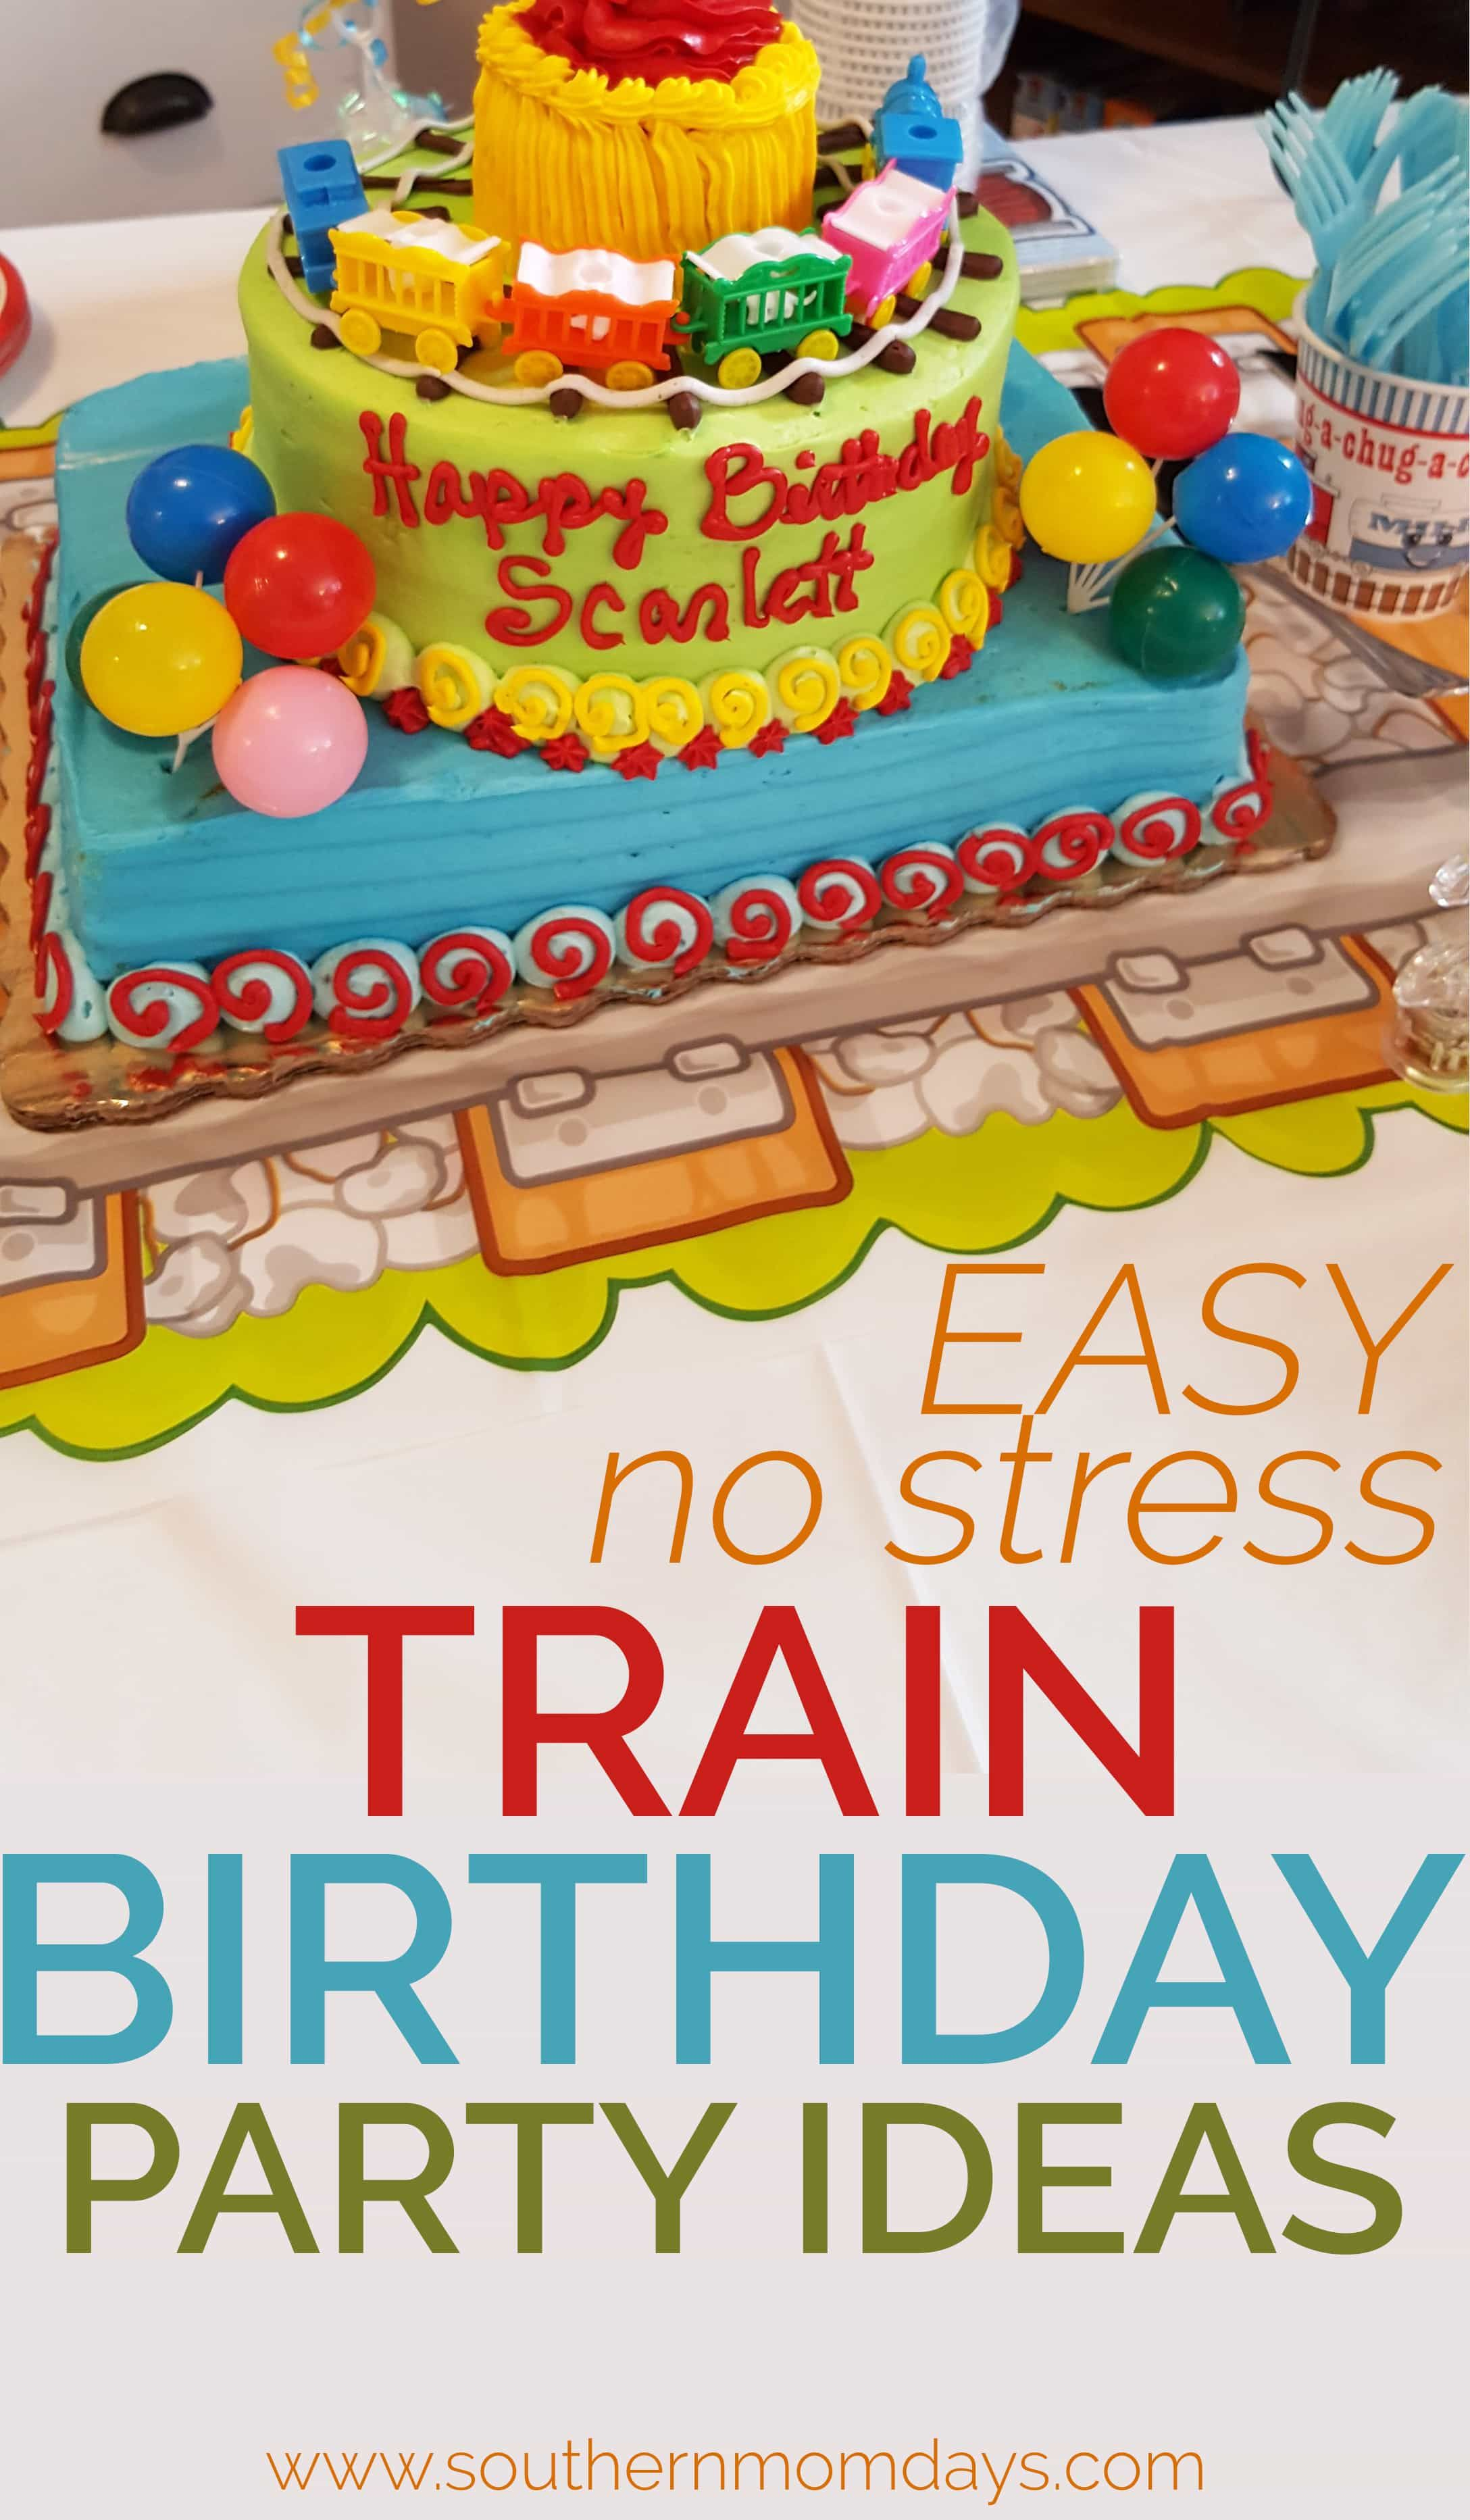 Easy No Stress Train Birthday Party Ideas